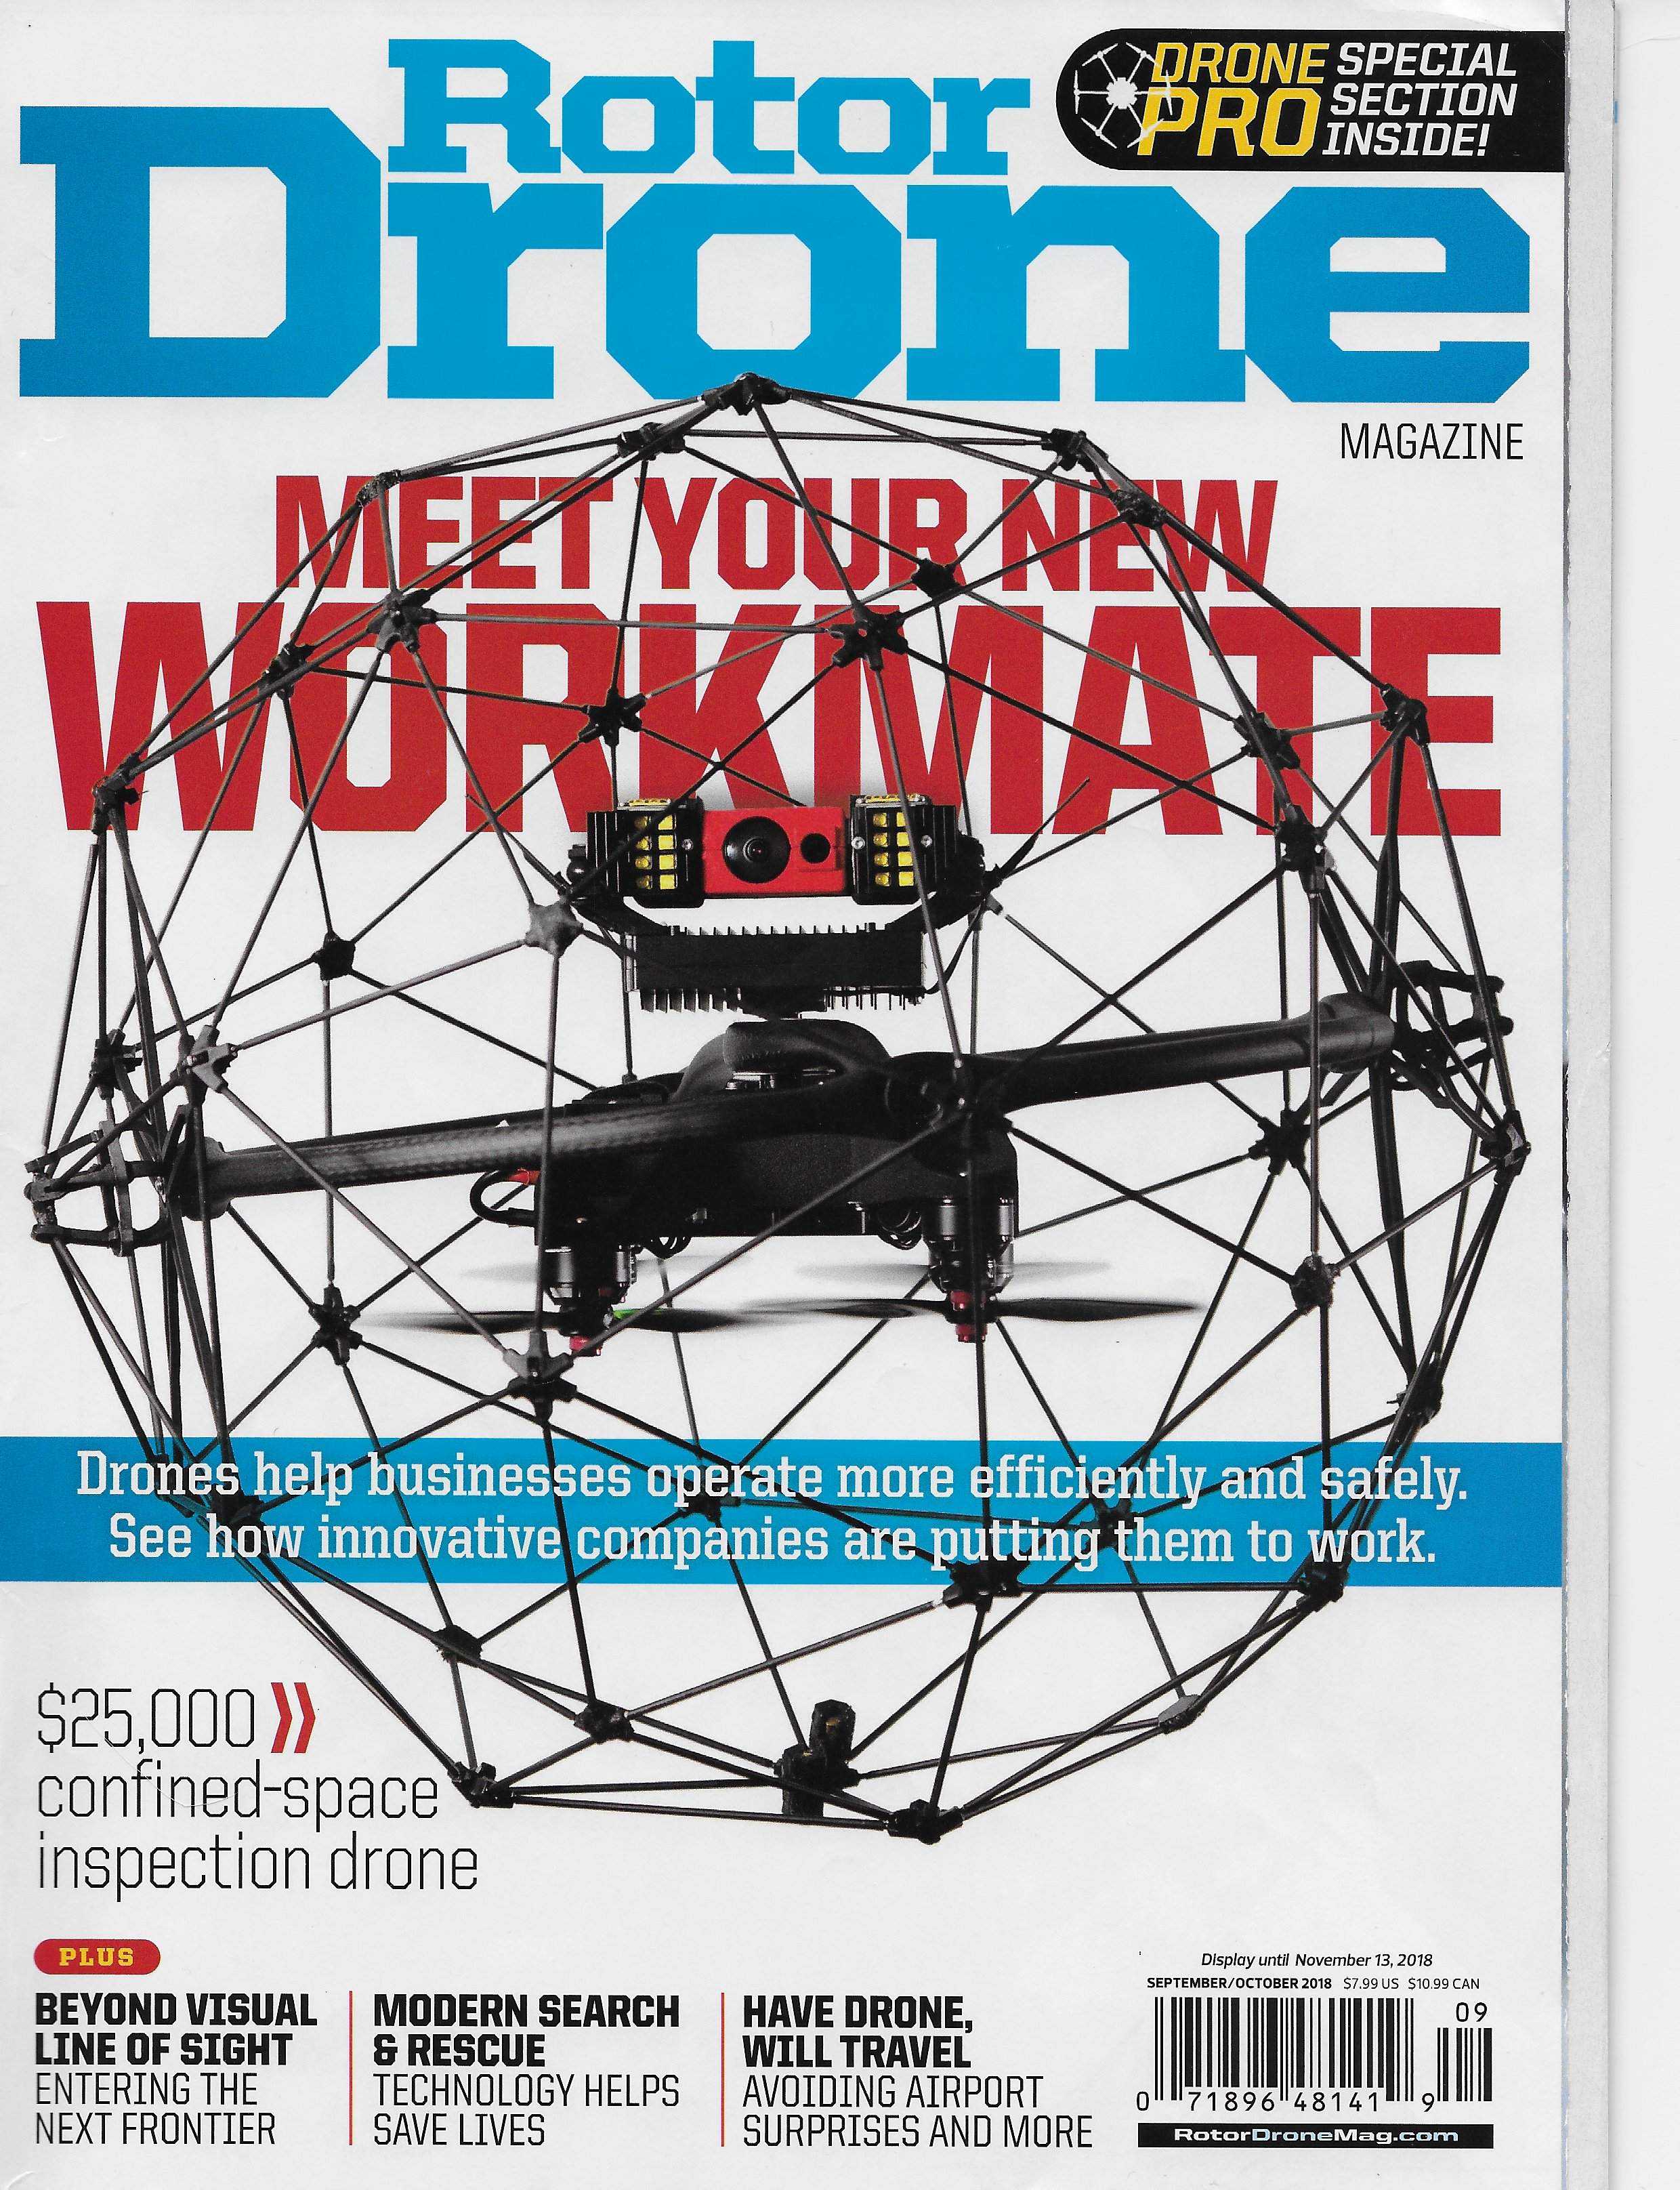 Cover Rotor Drone SEP-OCT 2018.JPG